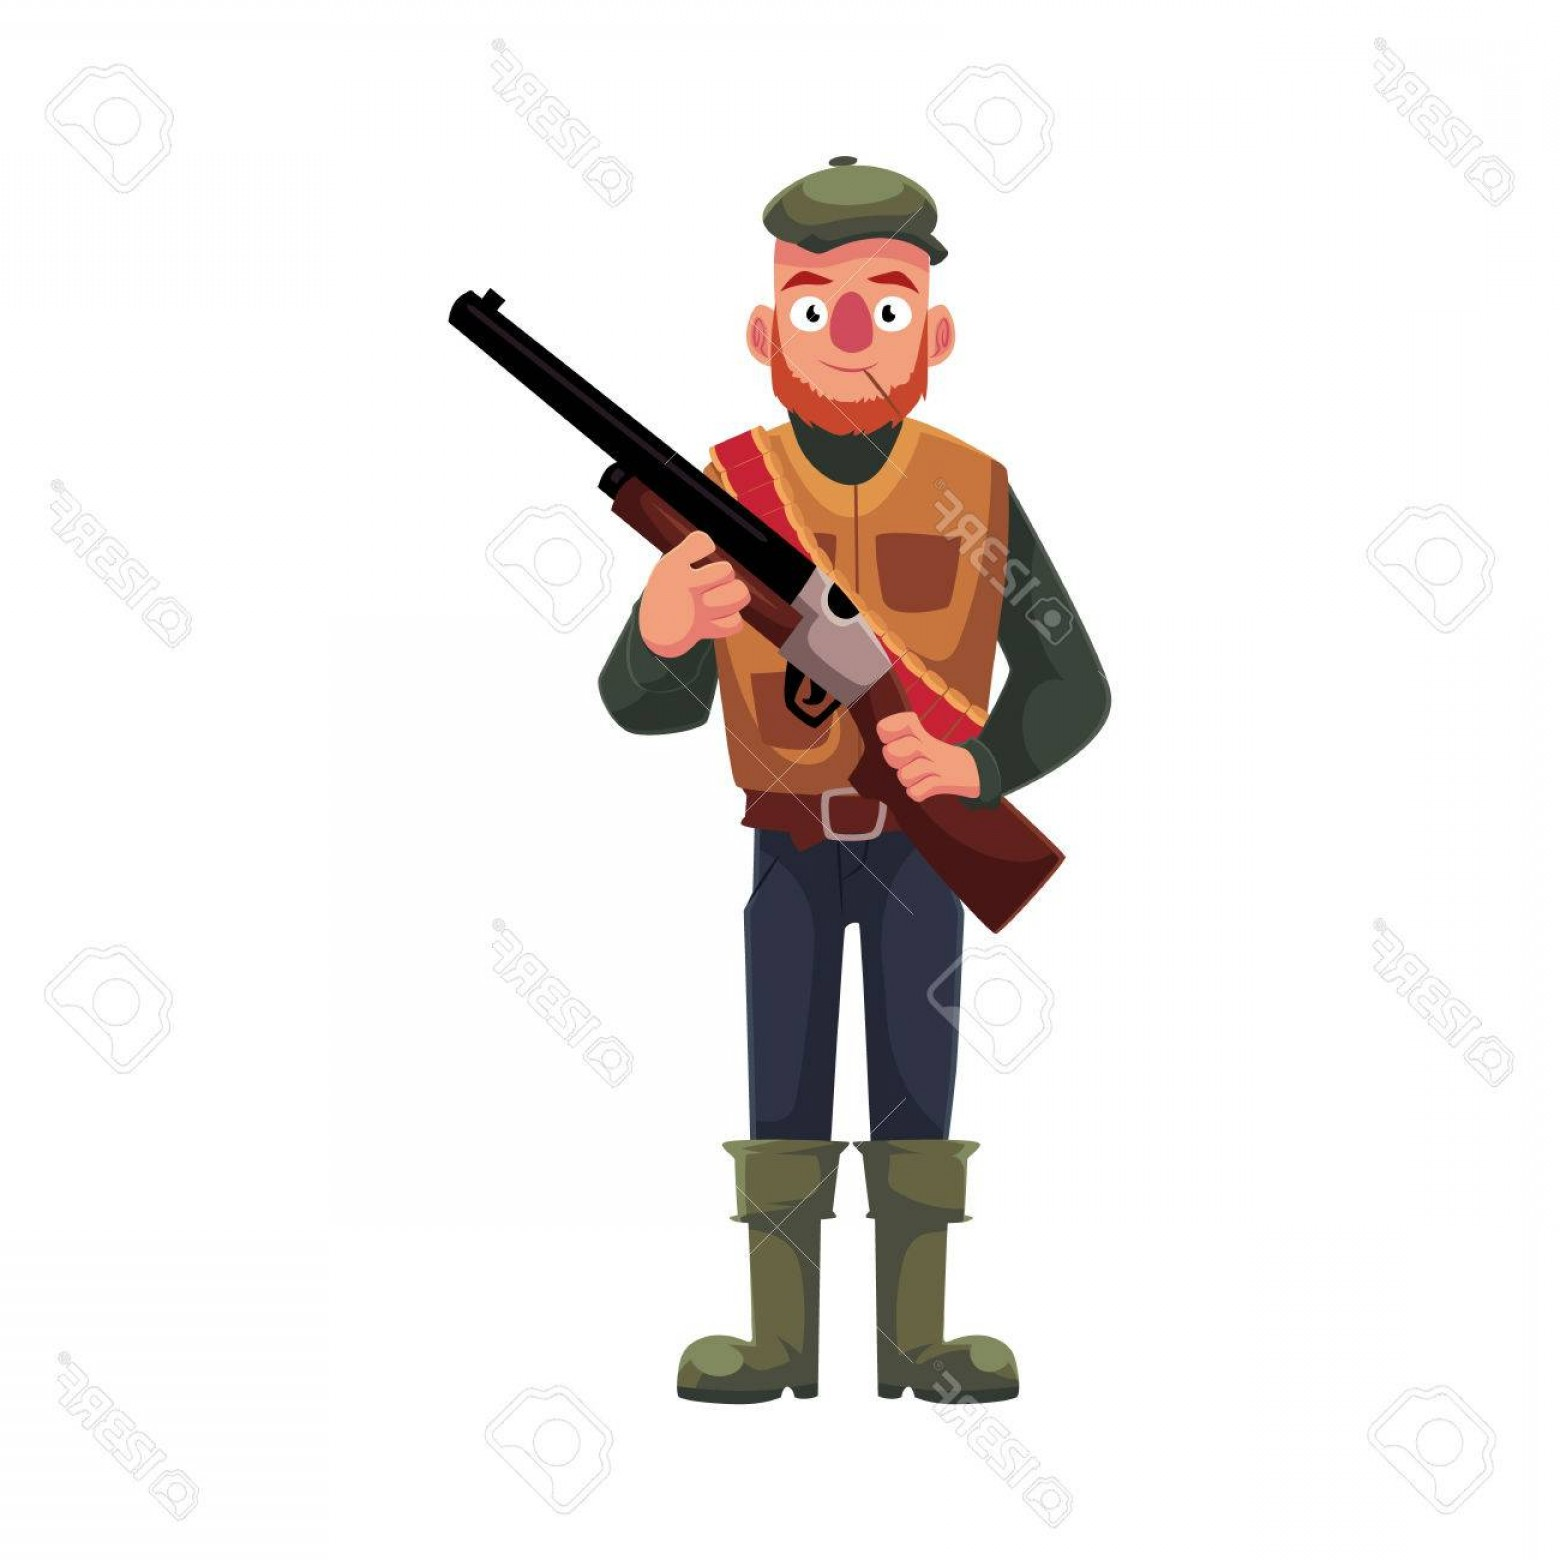 Vector Rifle And Boots: Photostock Vector Funny Male Hunter In Hunting Vest And Rubber Boots Holding A Rifle Cartoon Vector Illustration Isola